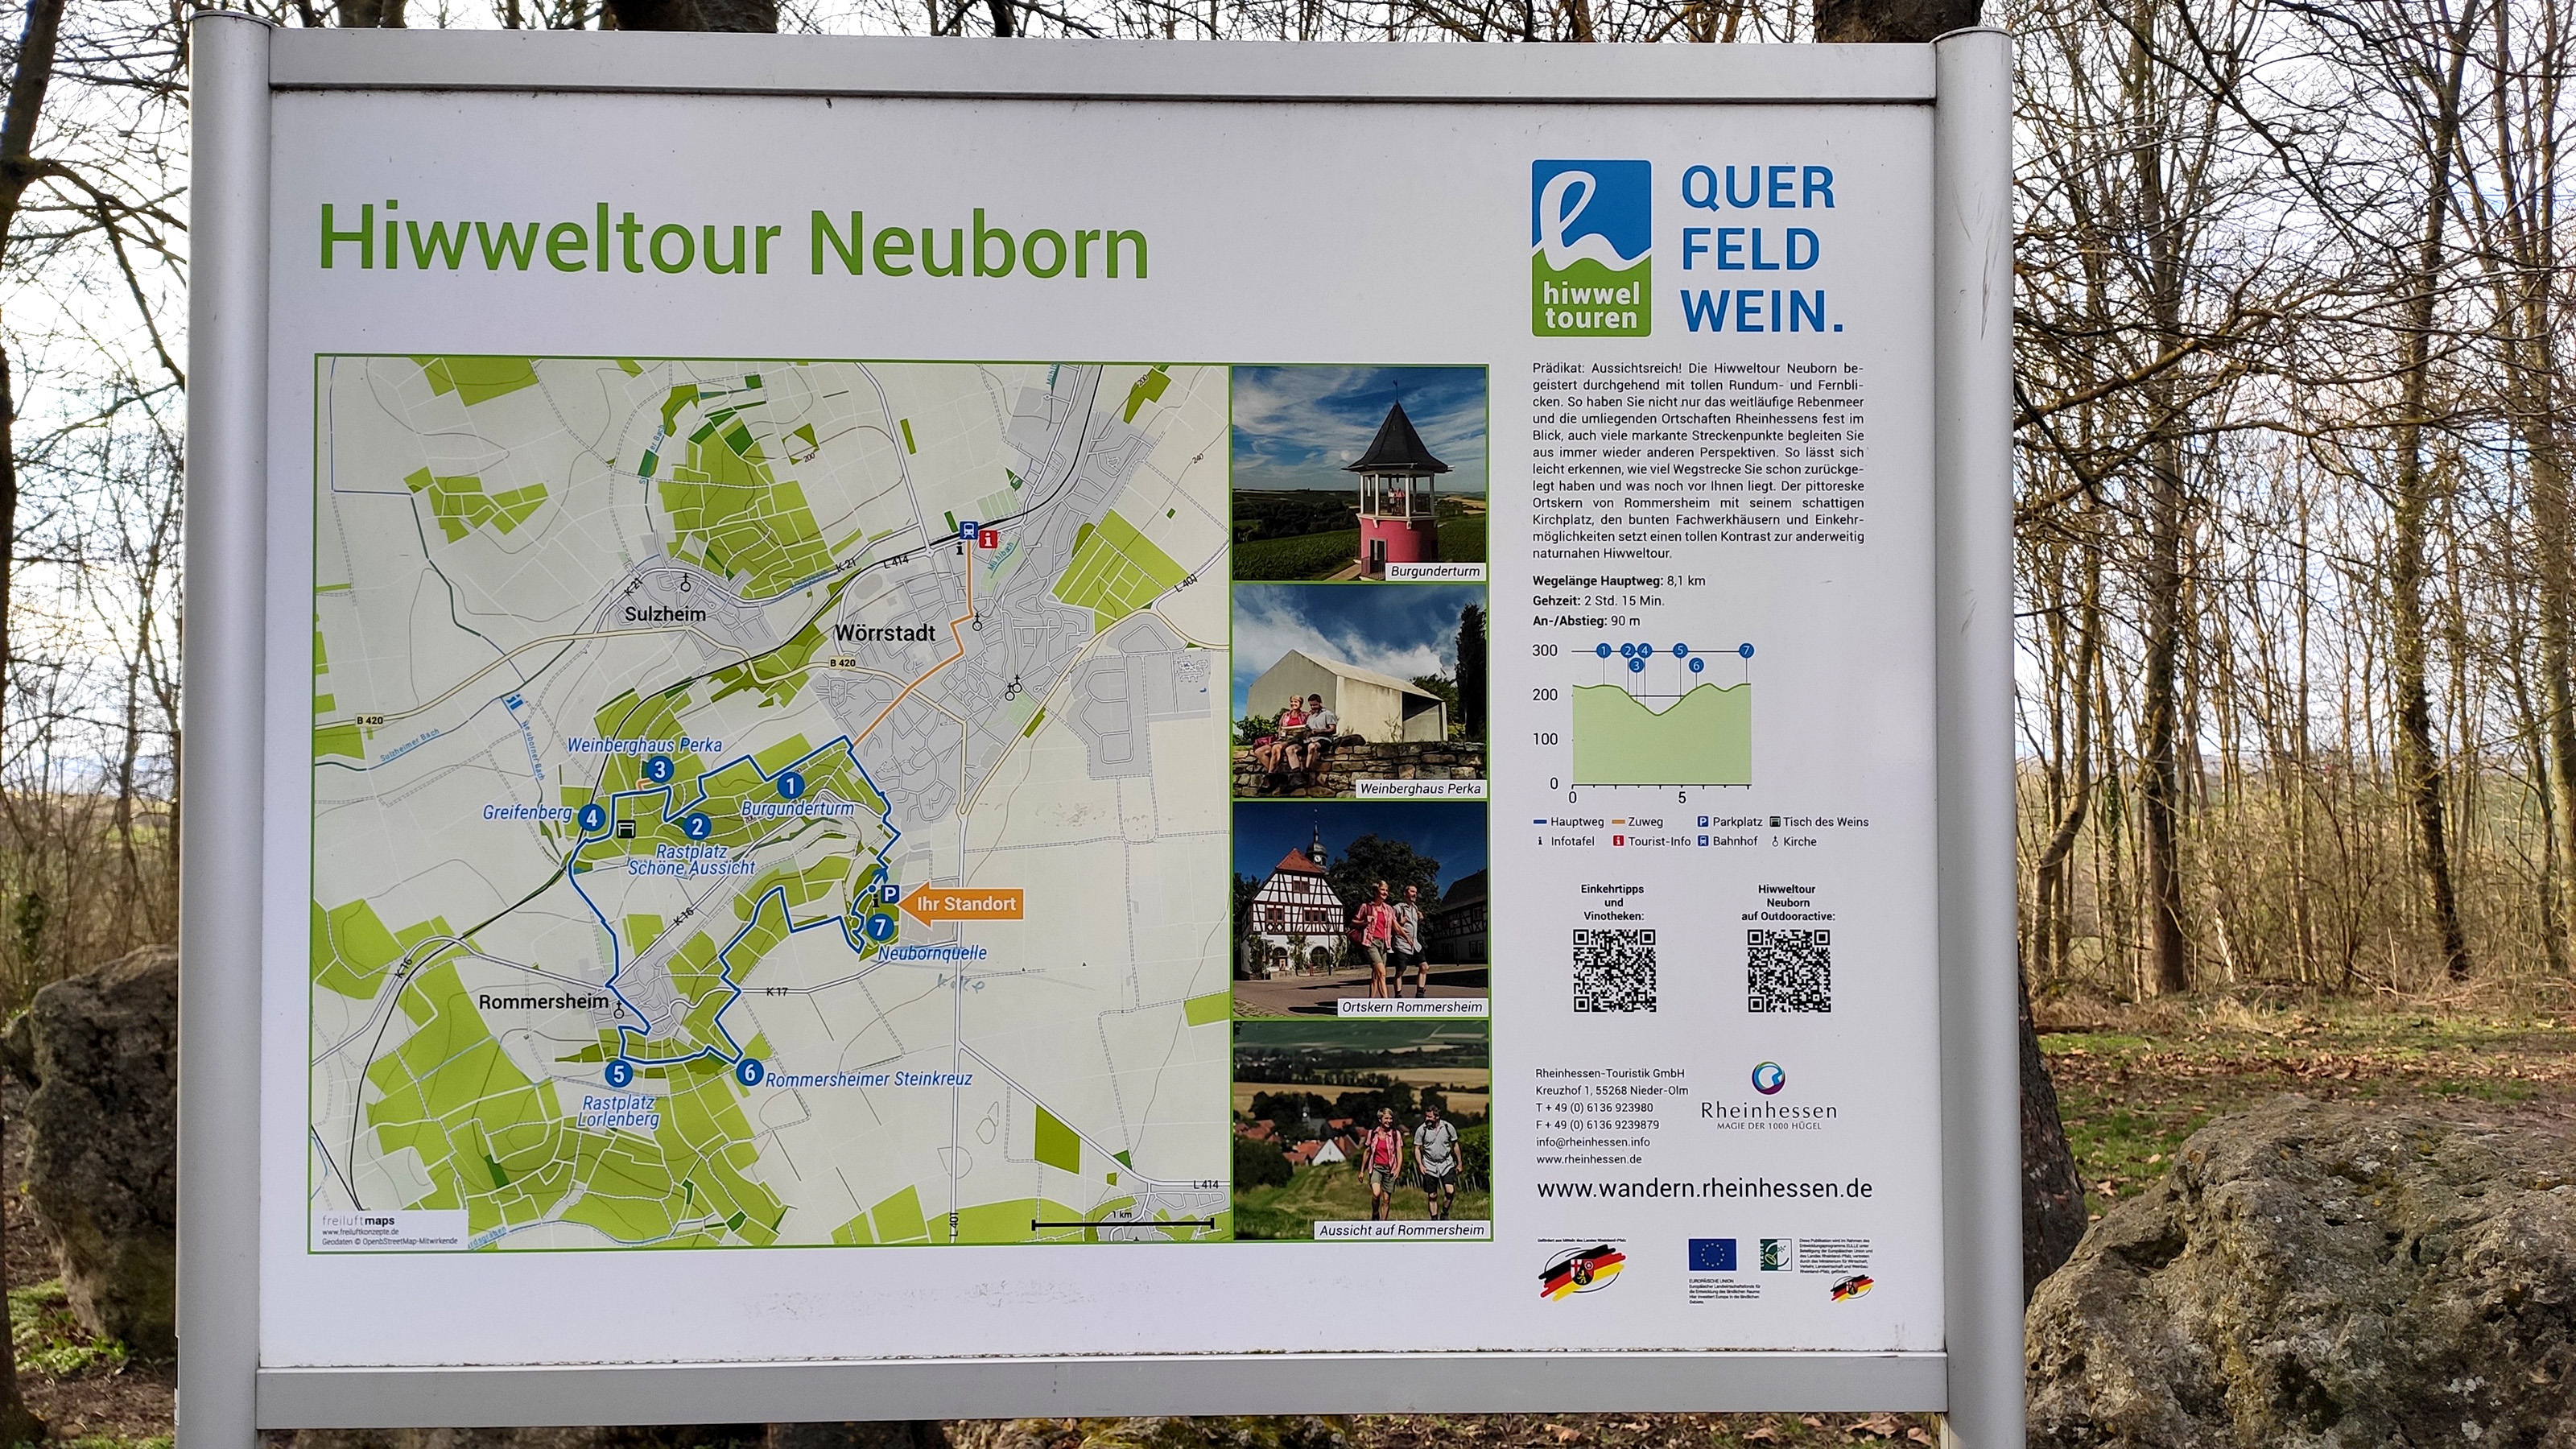 Hiwweltour Neuborn trail overview Information board